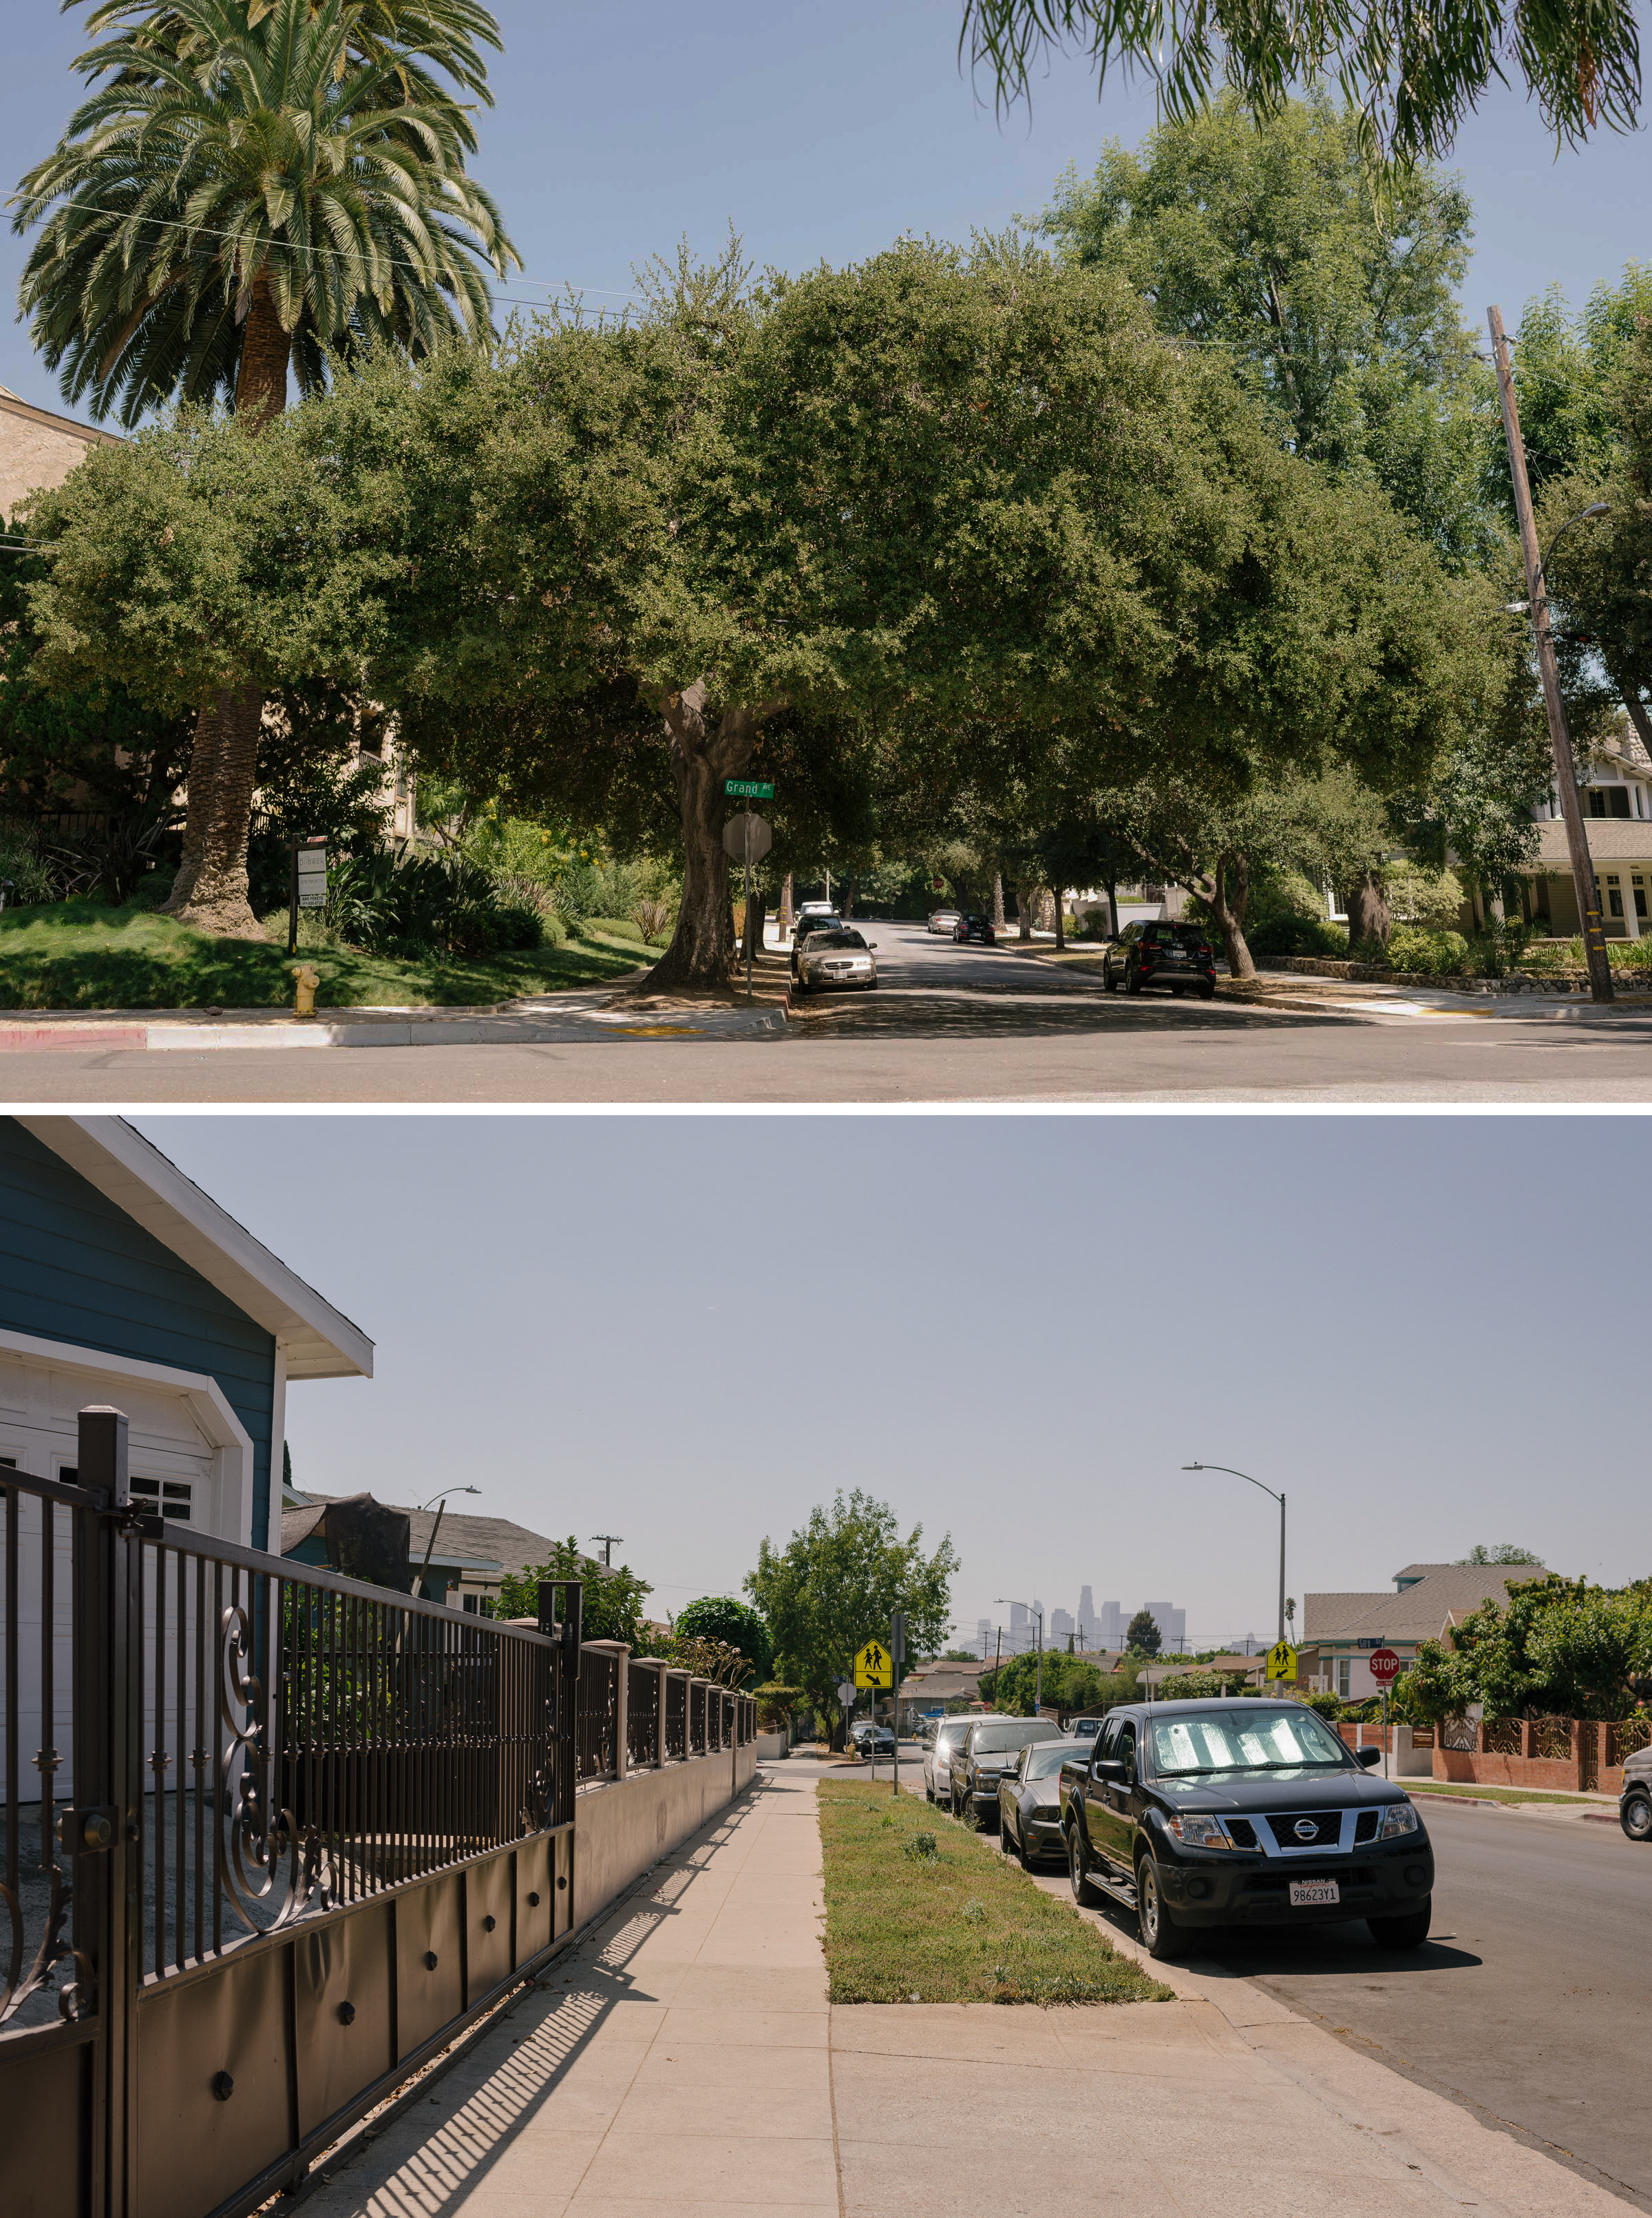 Recent research shows that affluent communities (top) in L.A. county have significantly more and larger street trees than lower-income neighborhoods. Photos: Carmen Chan